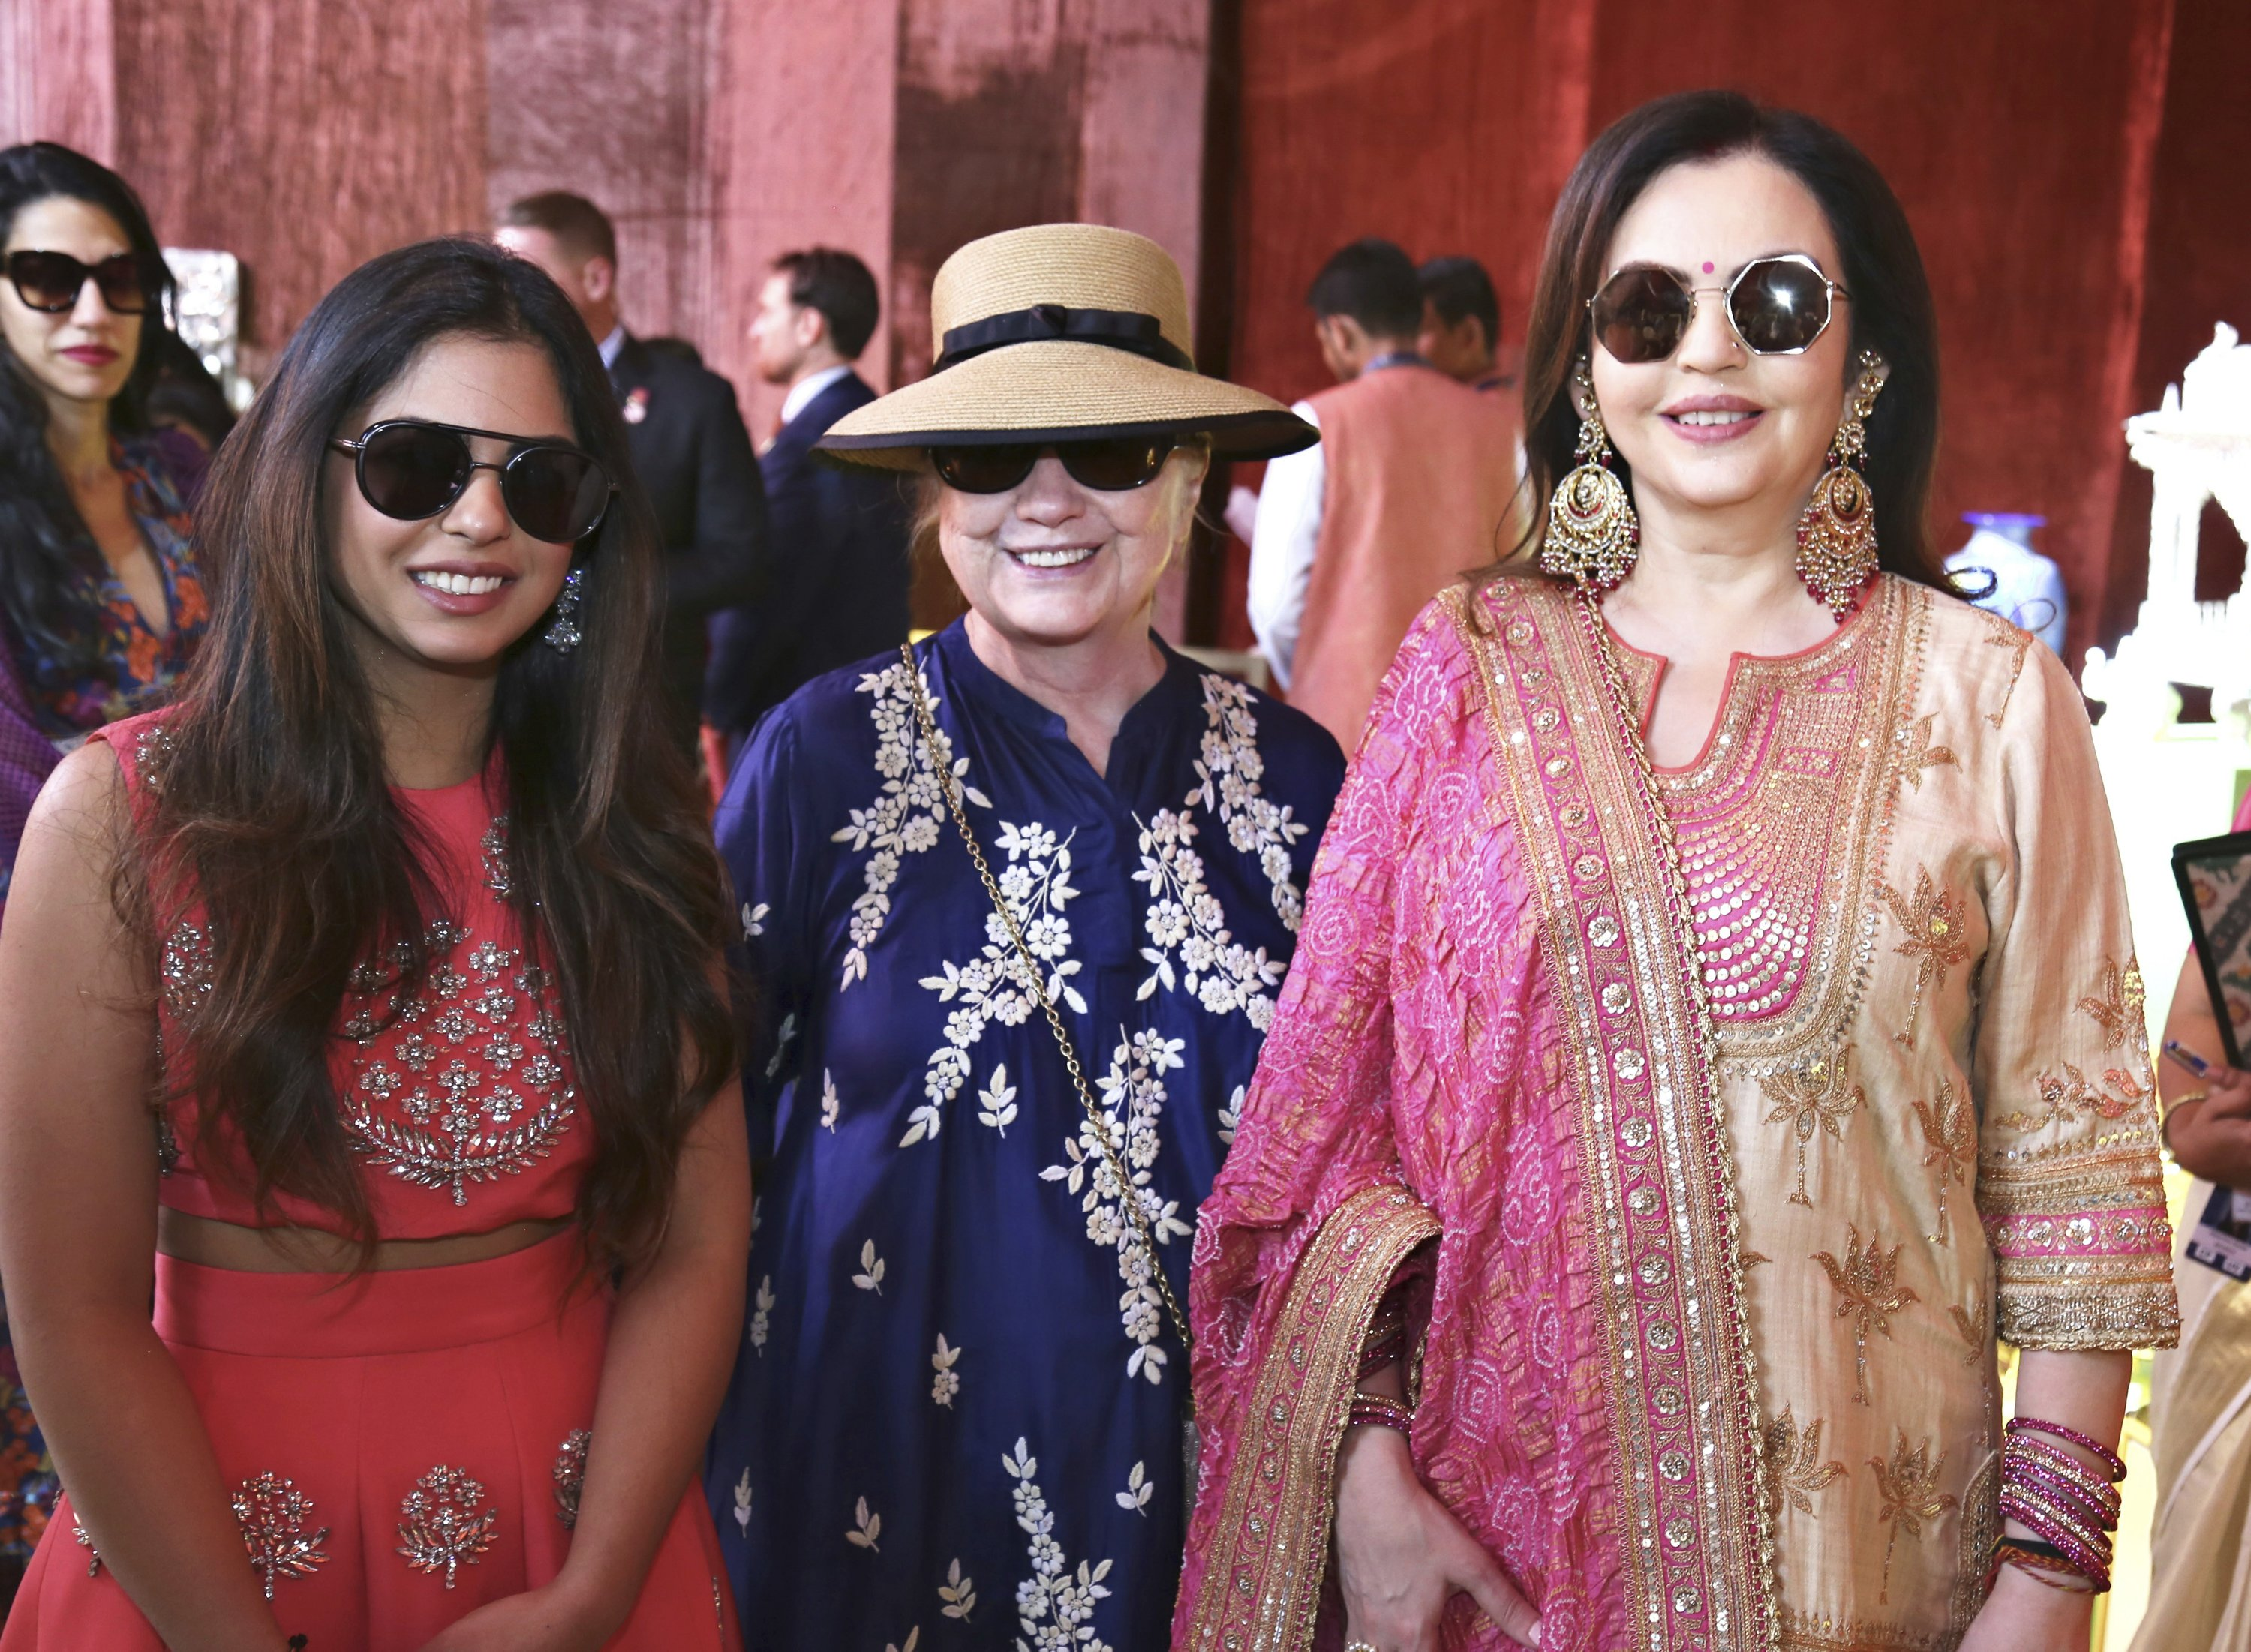 Beyonce! Hillary! Guests flood India for a very big wedding - The Associated Press